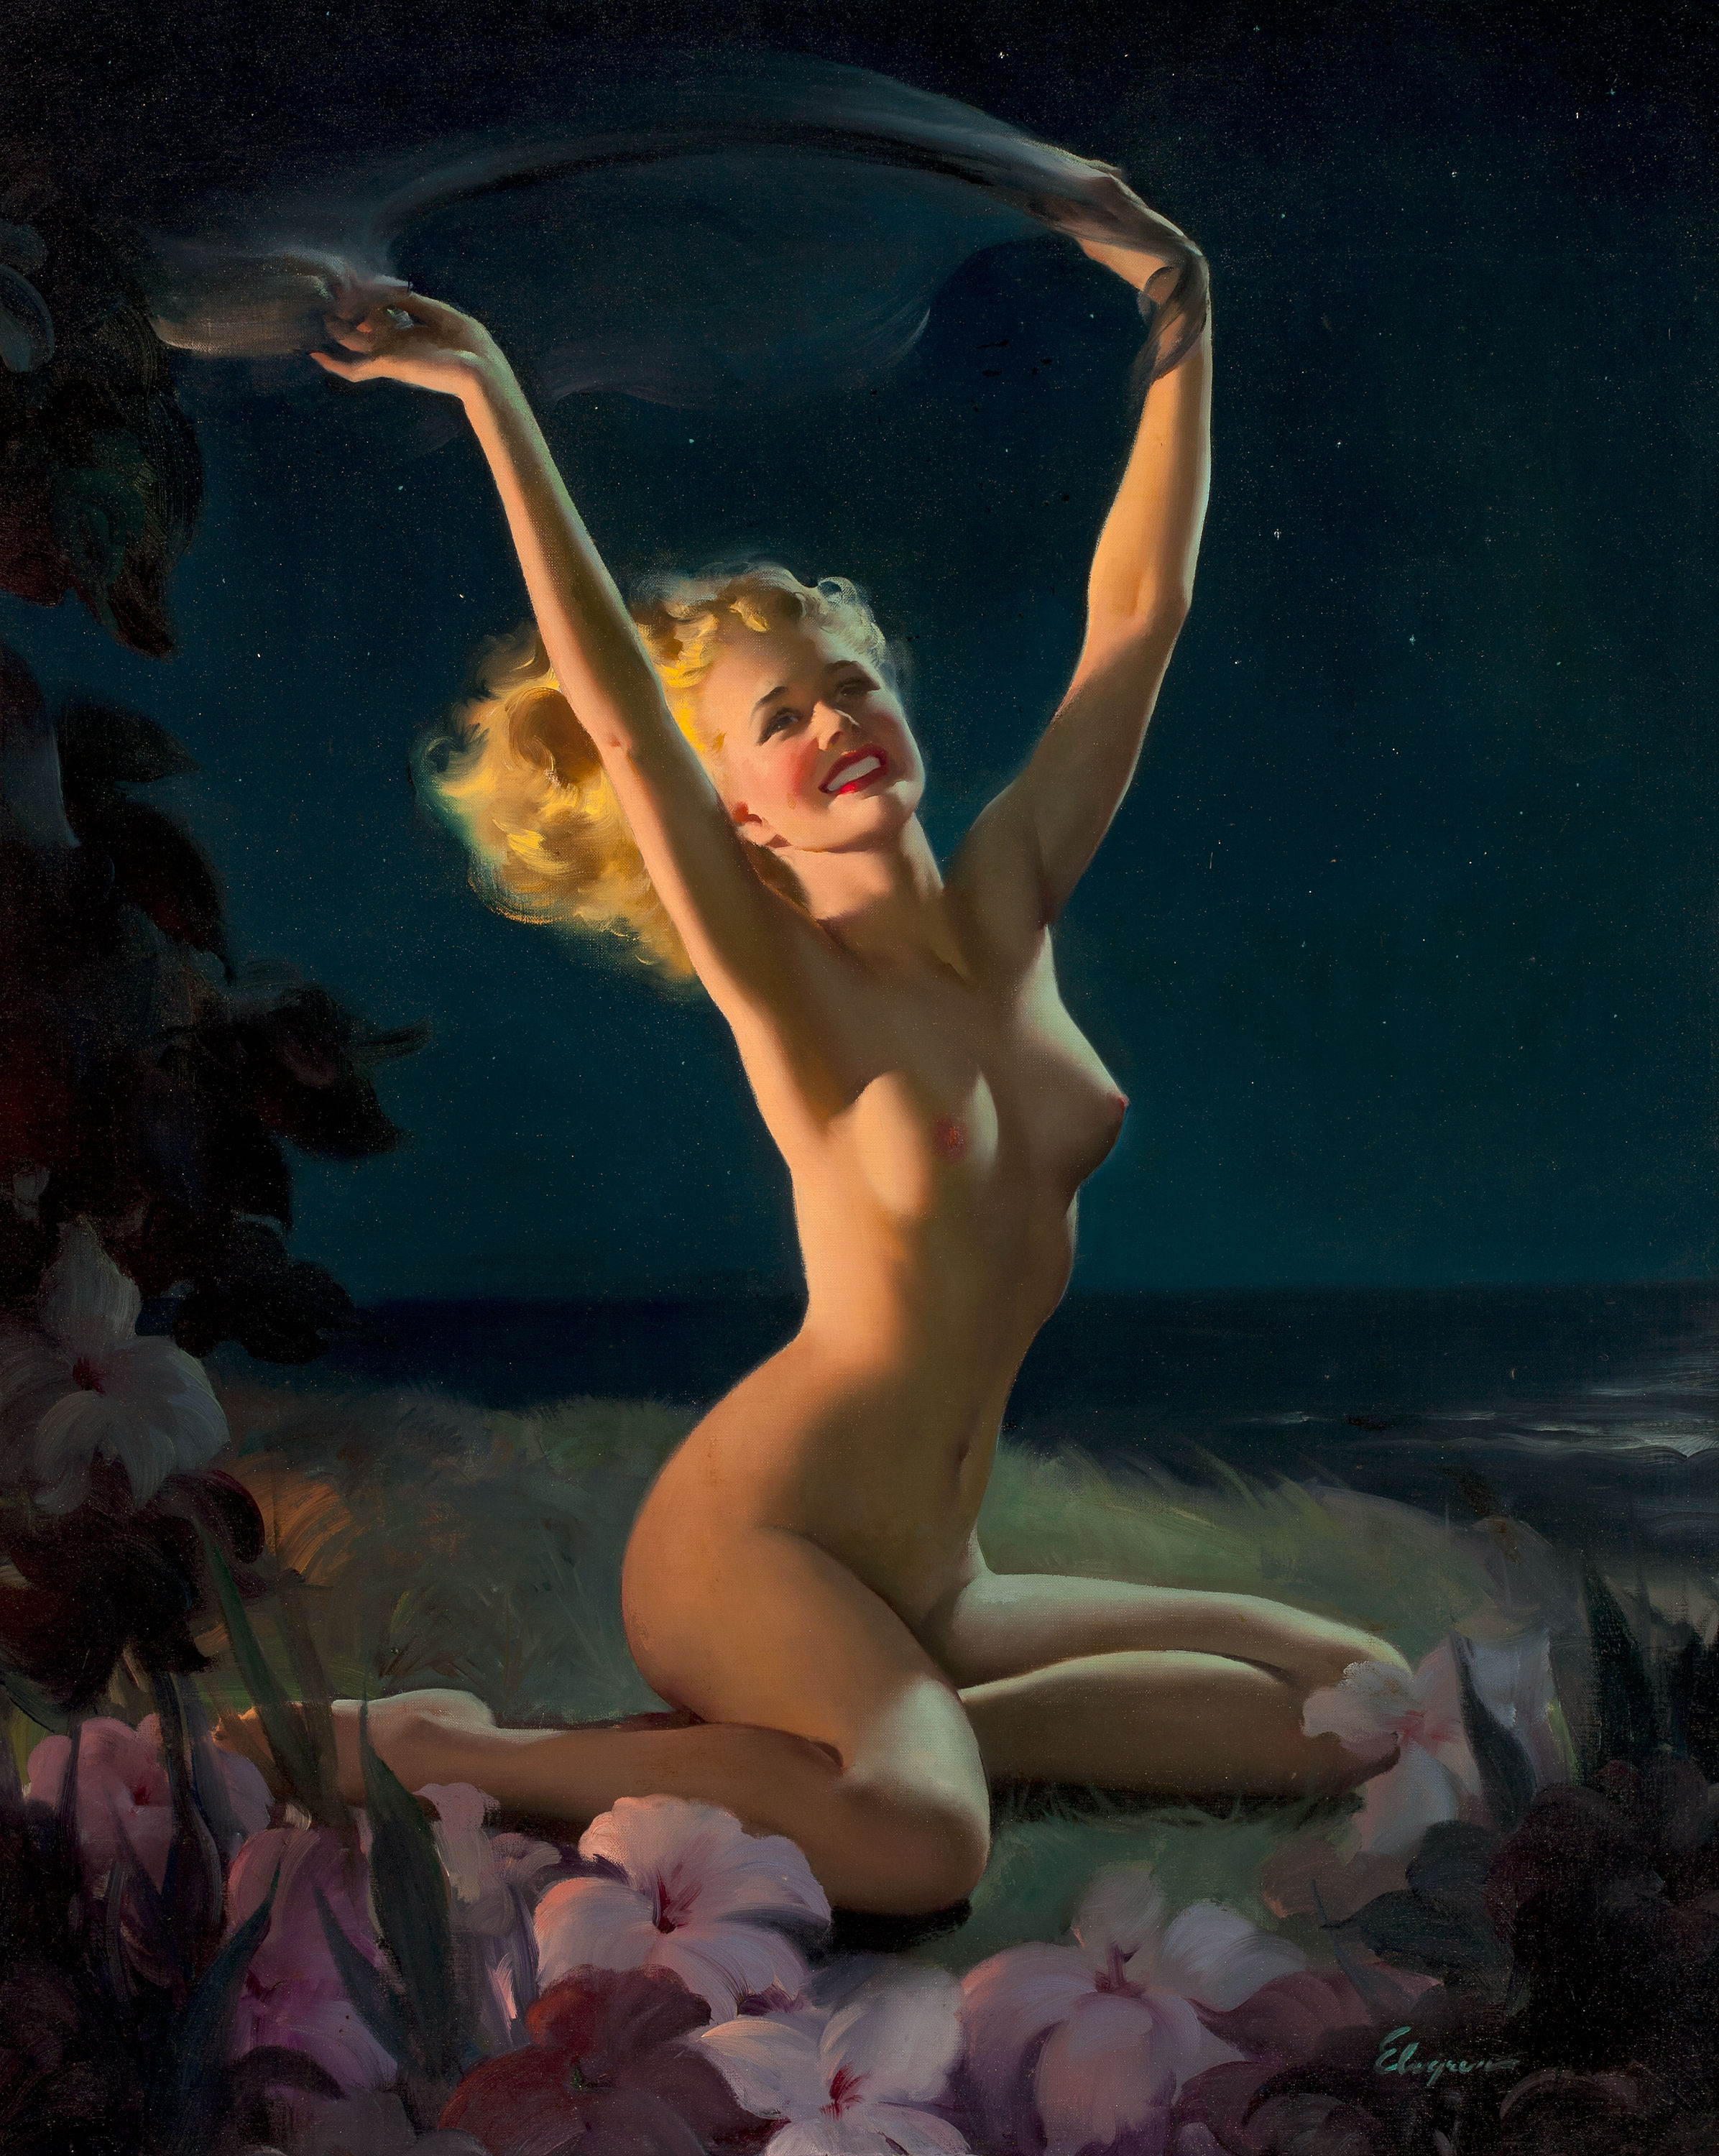 Gil Elvgren painting Gay Nymph, 1947, sold at Heritage Auctions in May, 2011 for $286,800